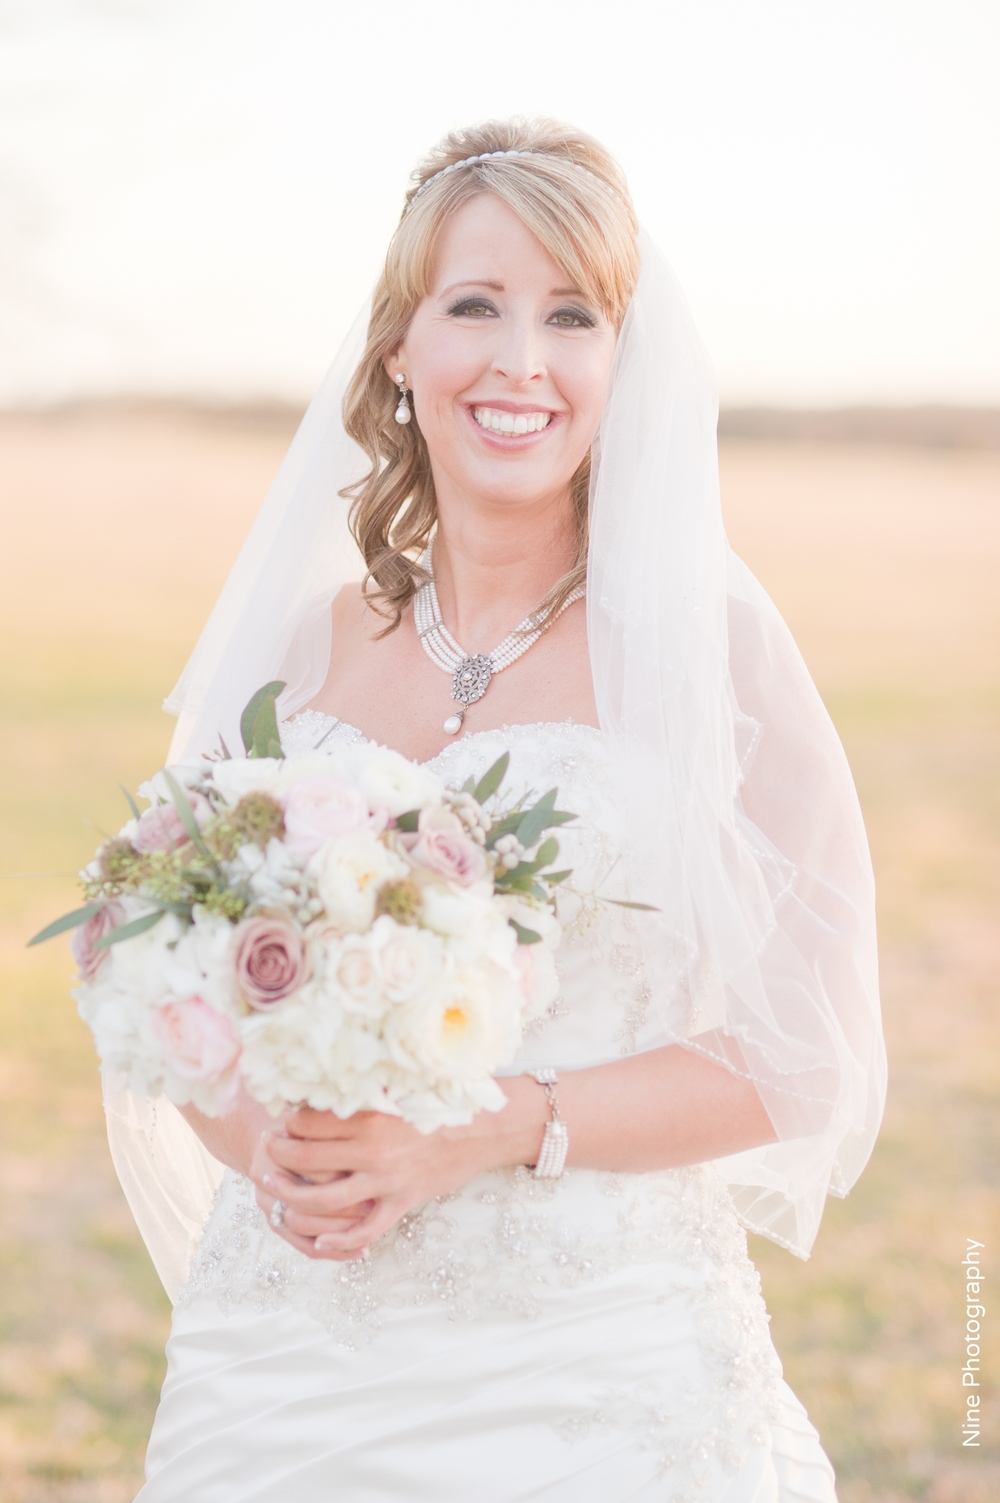 Bridal portrait closeup